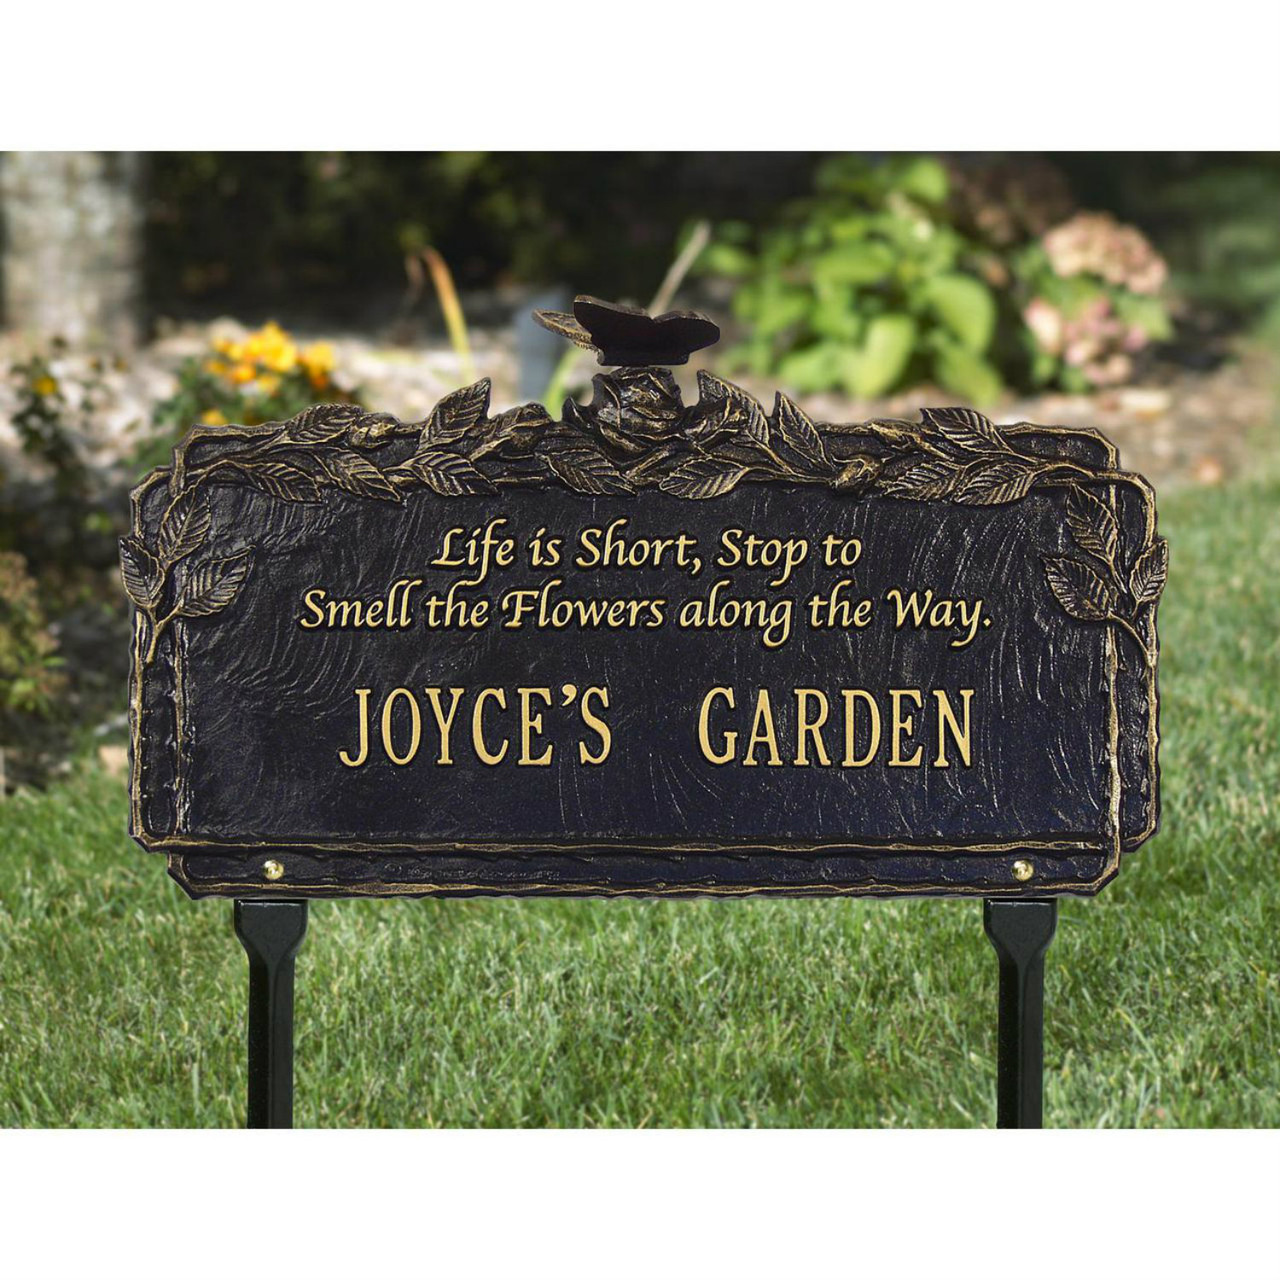 1 Line Customized Aluminum Dragonfly Garden Plaque with Quote 16.625W x 10H